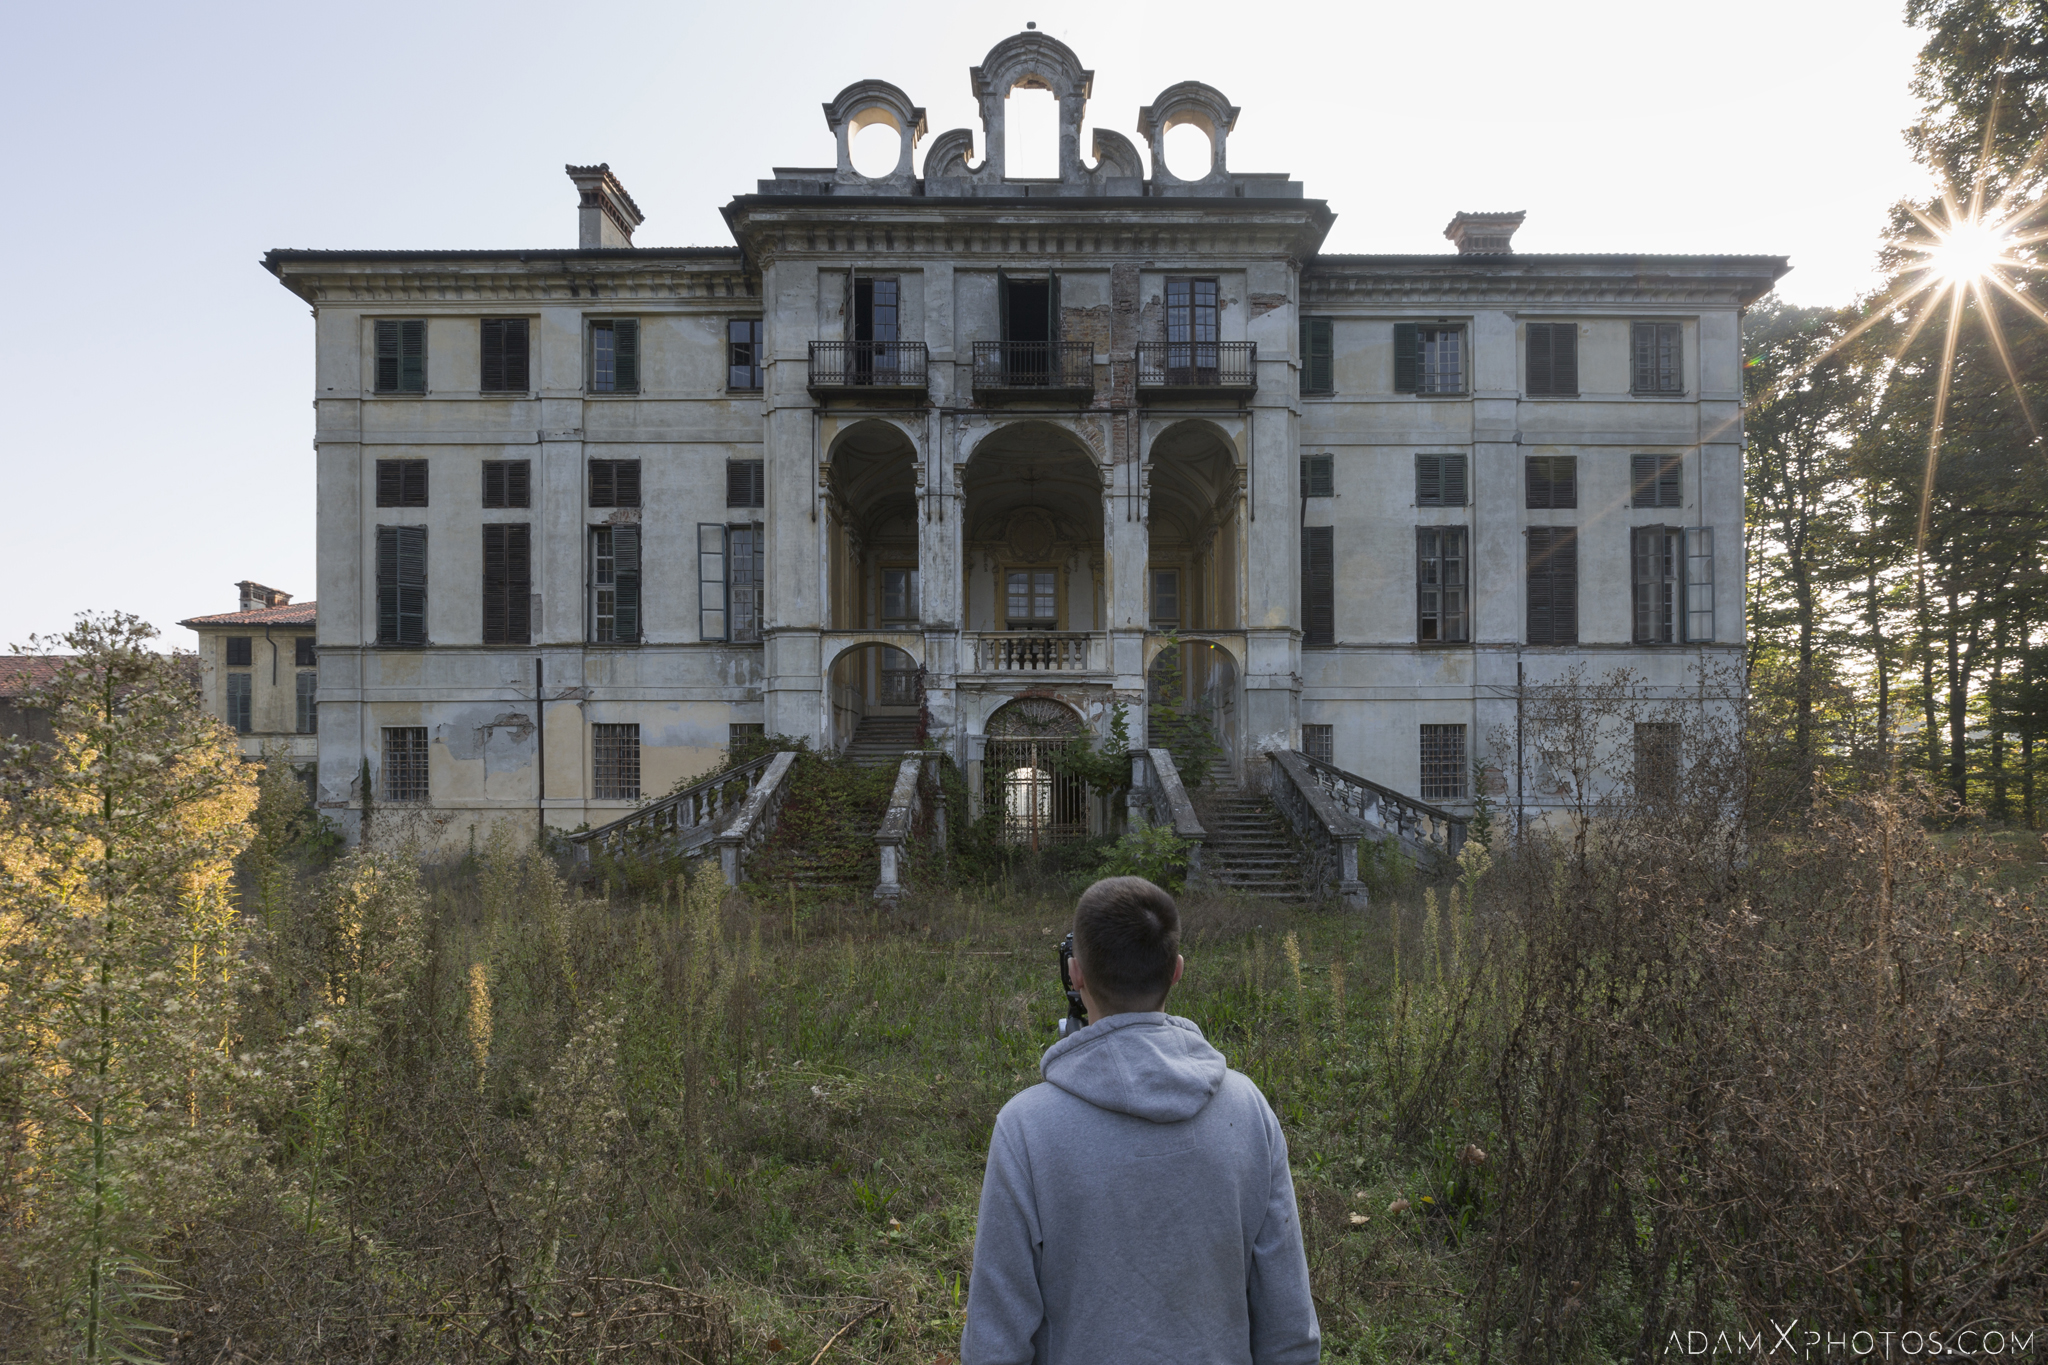 Outside External Wandering Dan Palazzo L Villa Rosa Urbex Adam X Urban Exploration Italy Italia Access 2016 Abandoned Grand Ornate Neoclassical decay lost forgotten infiltration derelict location creepy haunting eerie